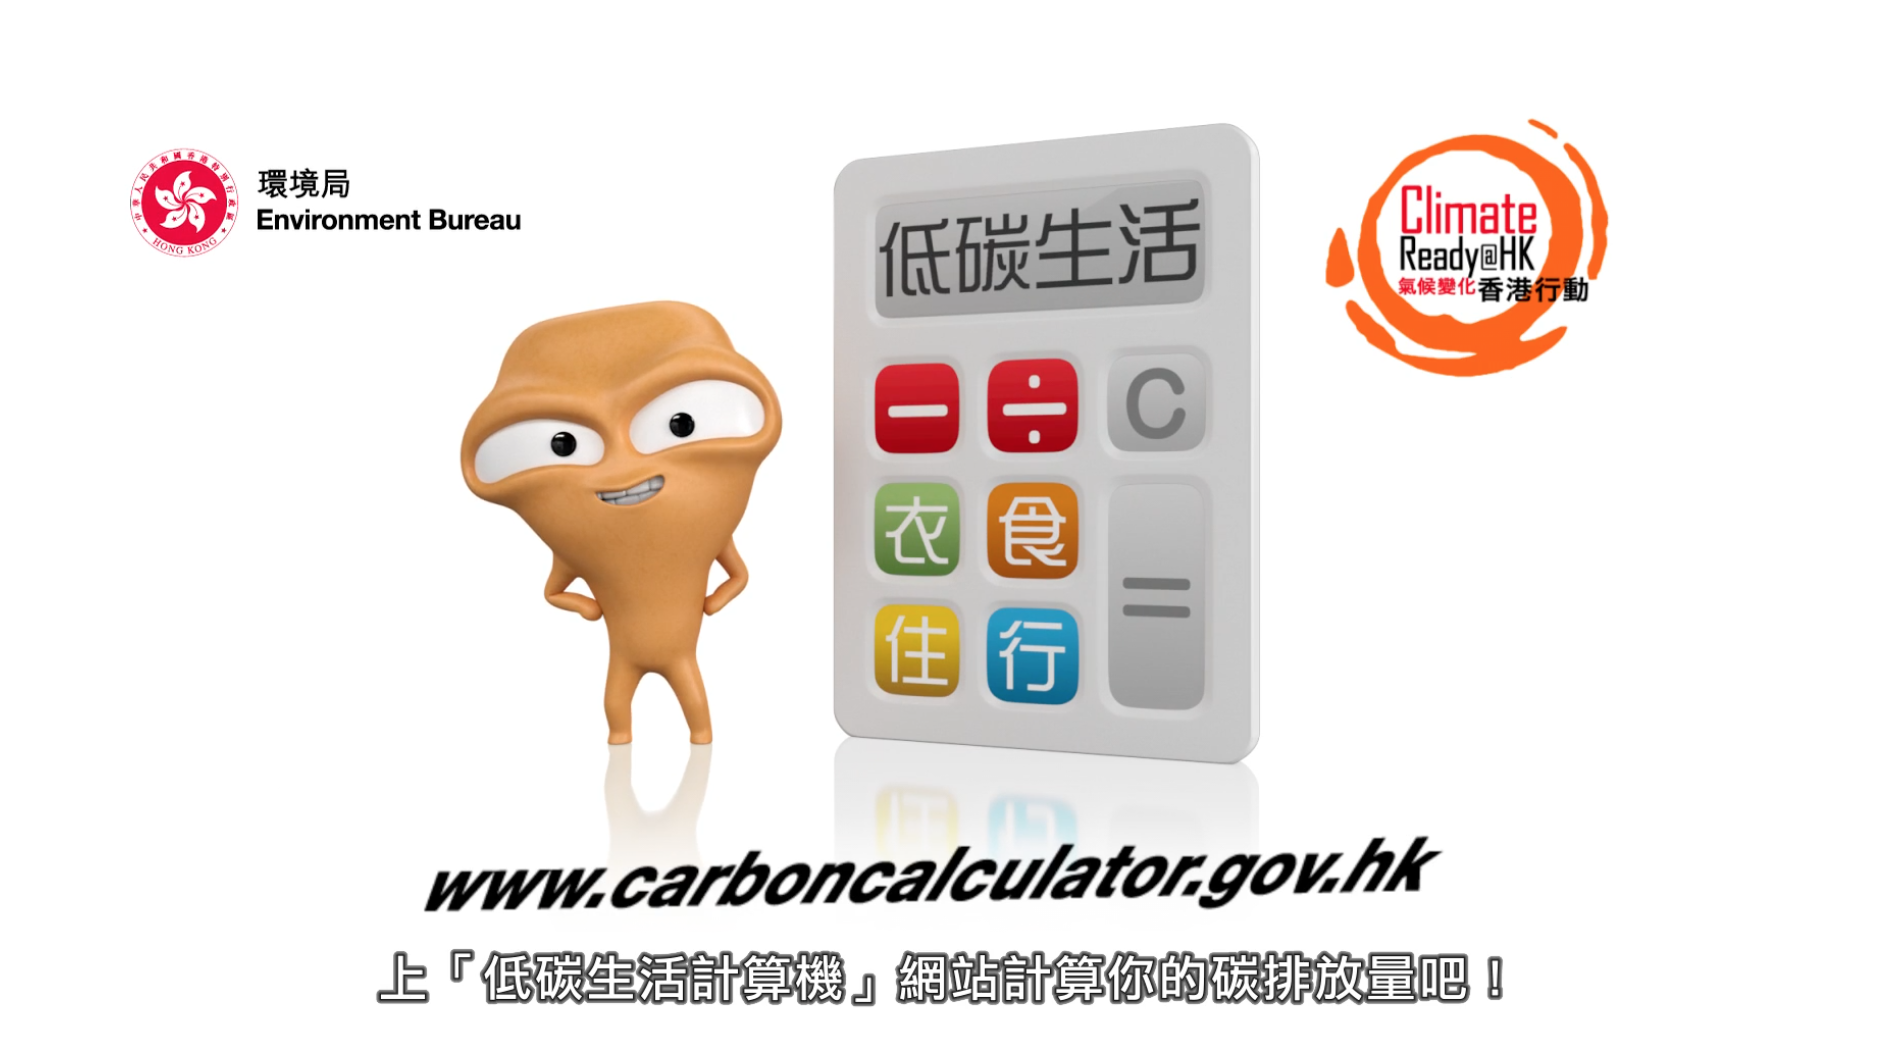 Climate Ready at Hong Kong - Low Carbon Living Calculator